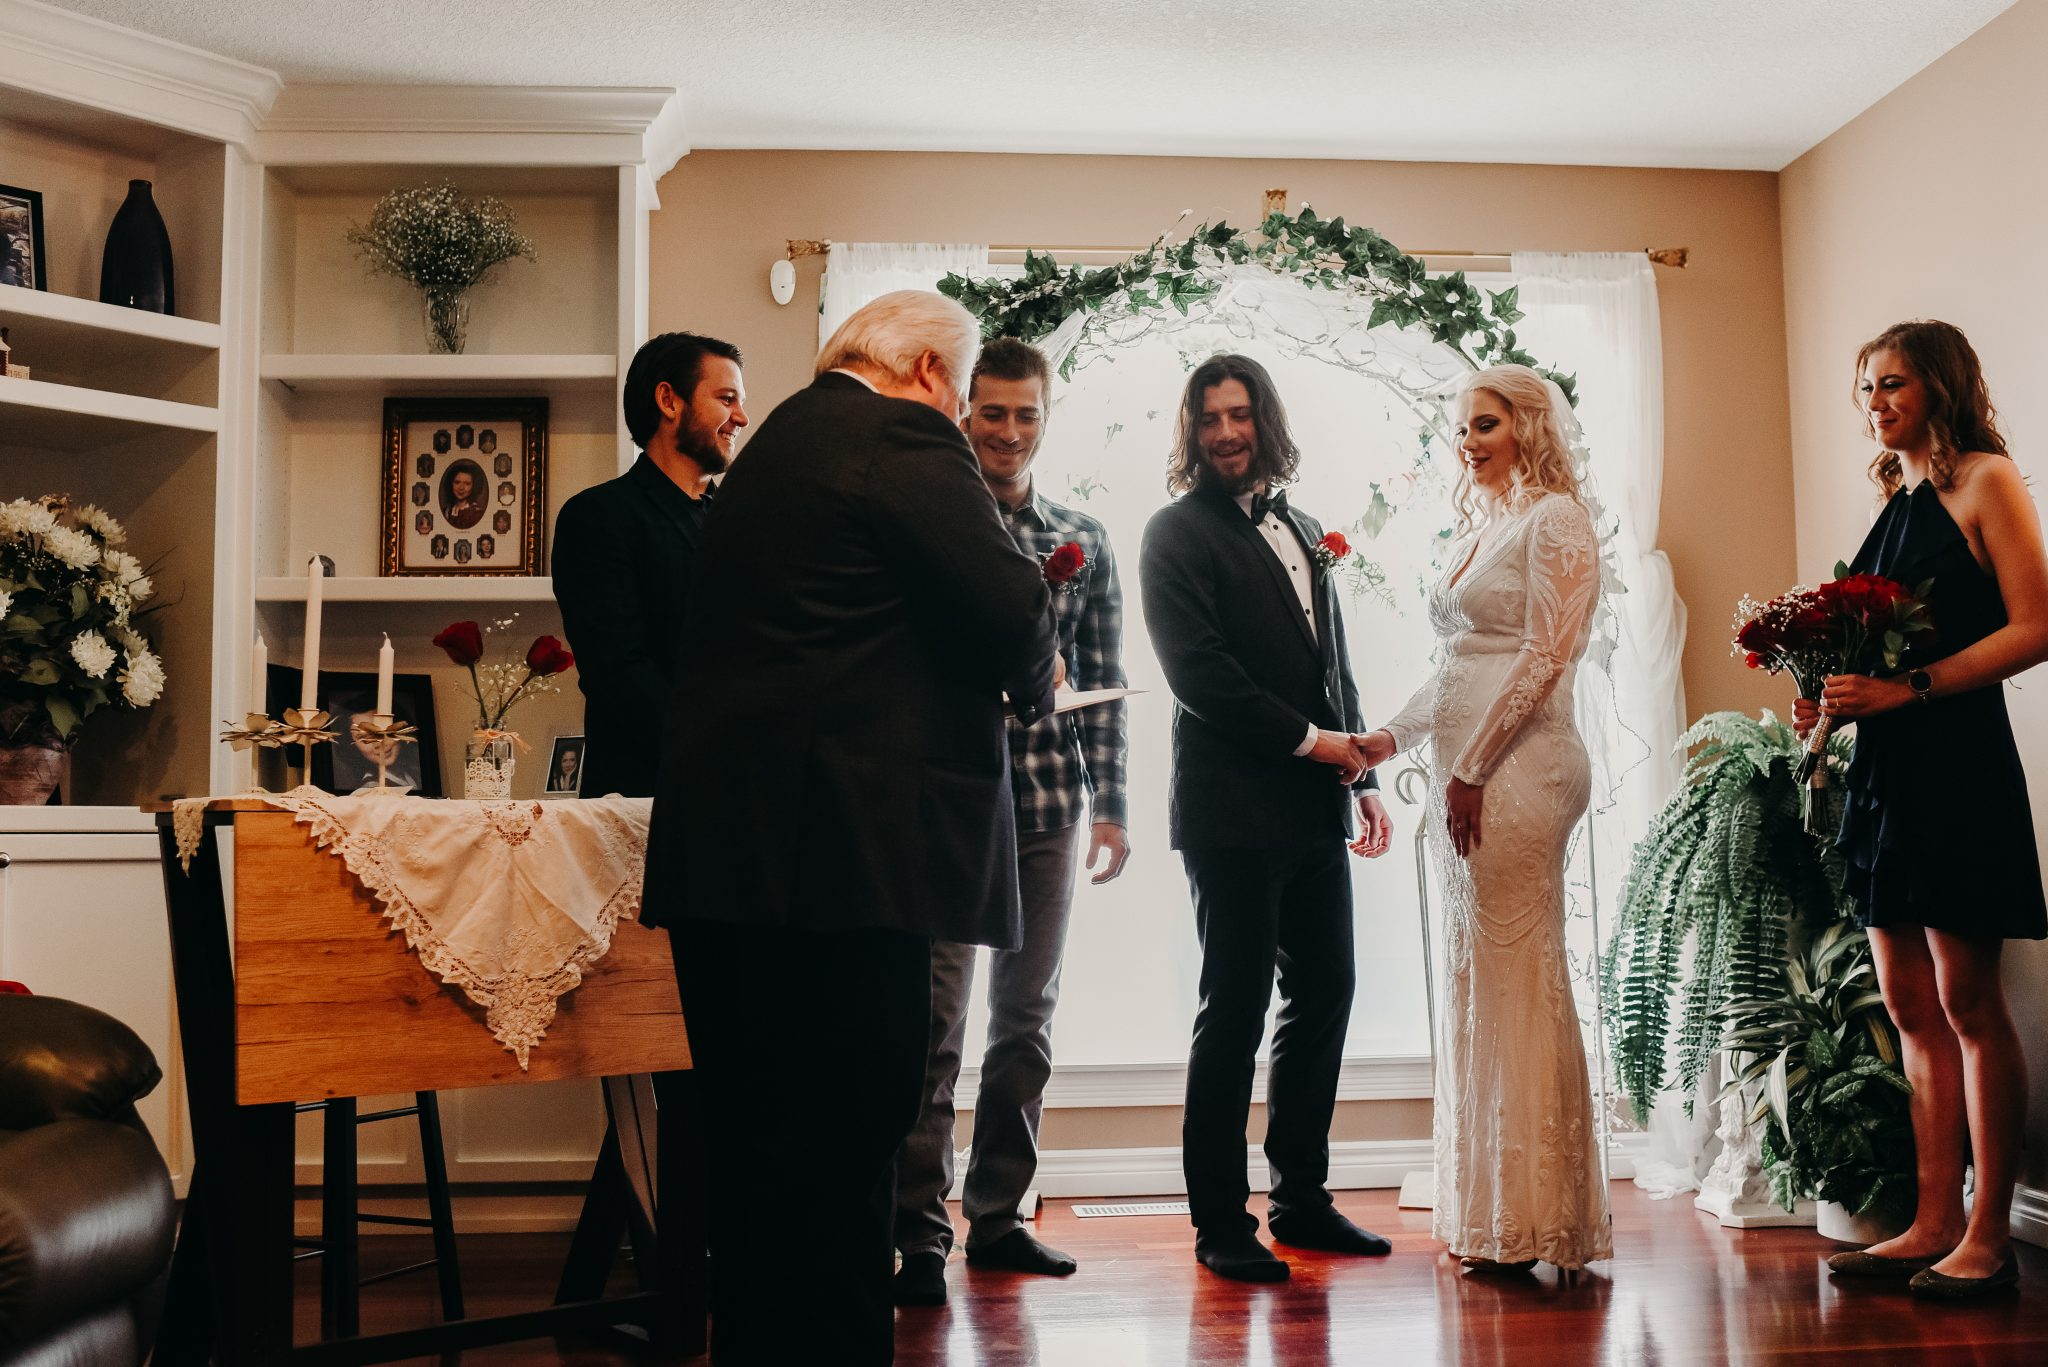 Intimate house wedding ceremony in St. Albert